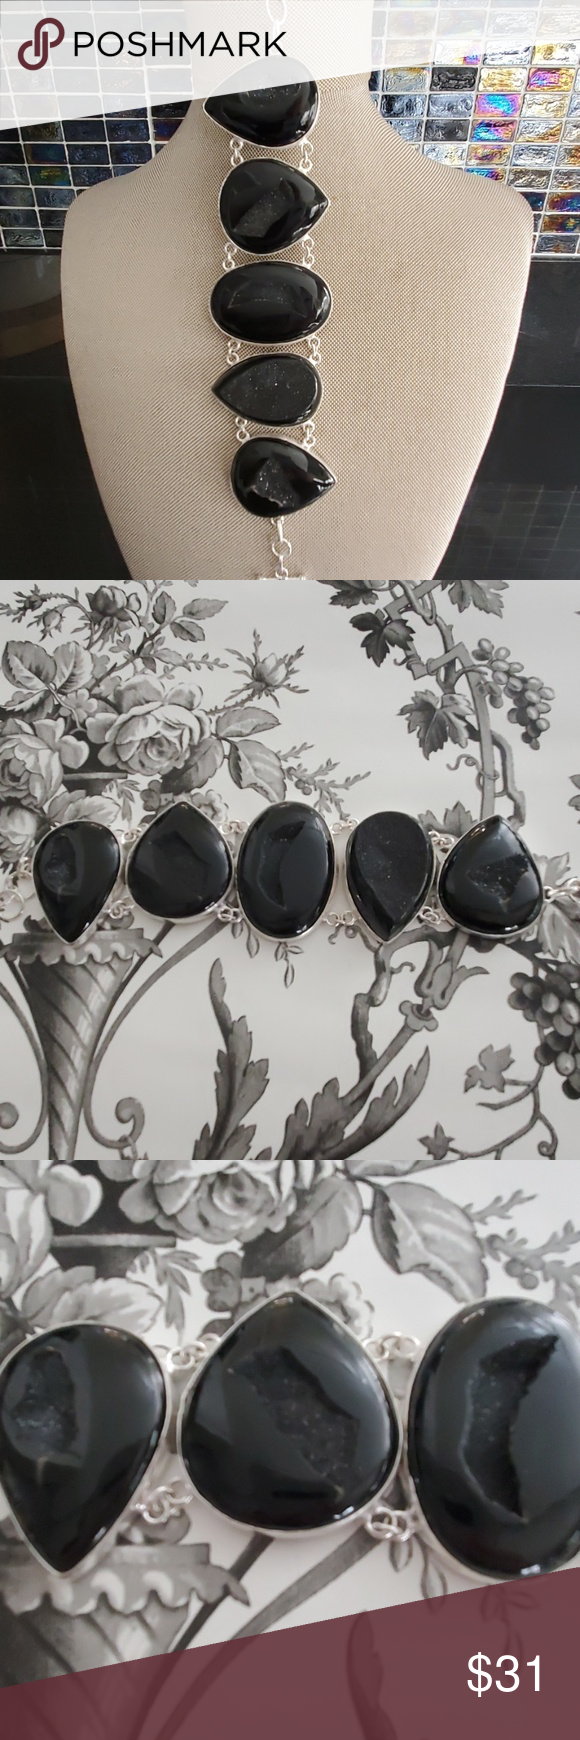 Gorgeous Statement Bracelet OMW! This is a Gorgeous Statement Bracelet This is Not A Dainty Piece  Deep Midnight Black Color Largest Stone Approx 2